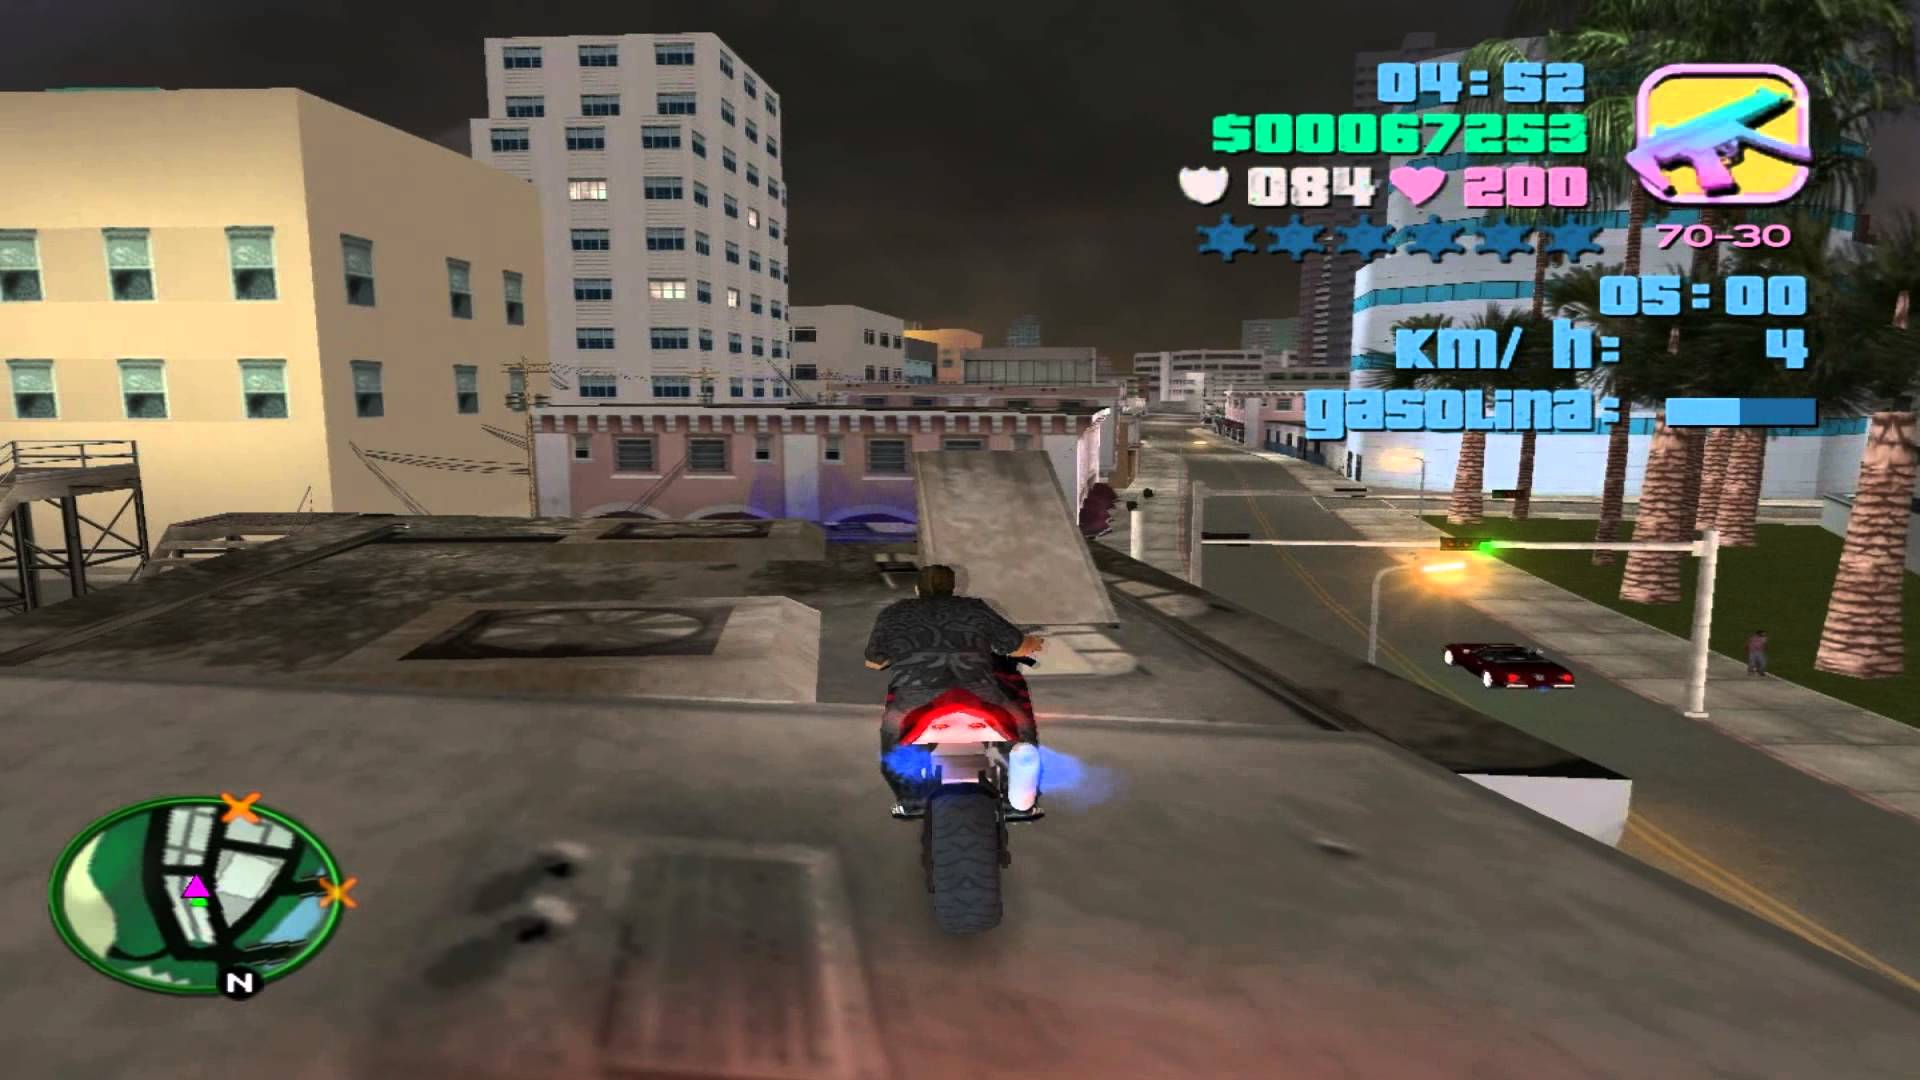 download gta vice city setup for pc windows 7 free